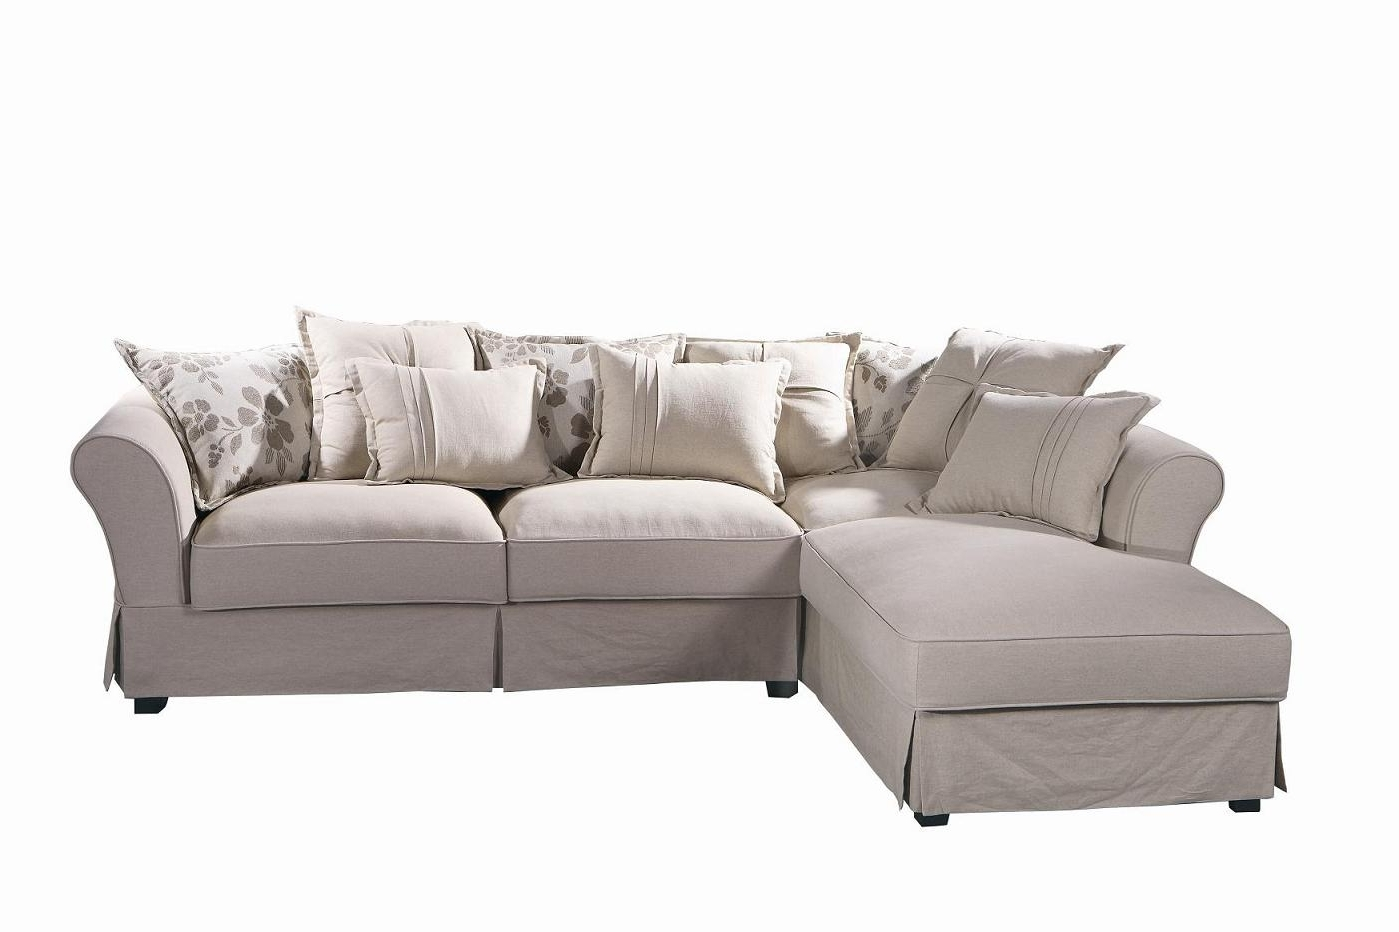 Best And Newest Nashville Sectional Sofas Intended For Low Price Sectional Sofas – Hotelsbacau (View 12 of 20)